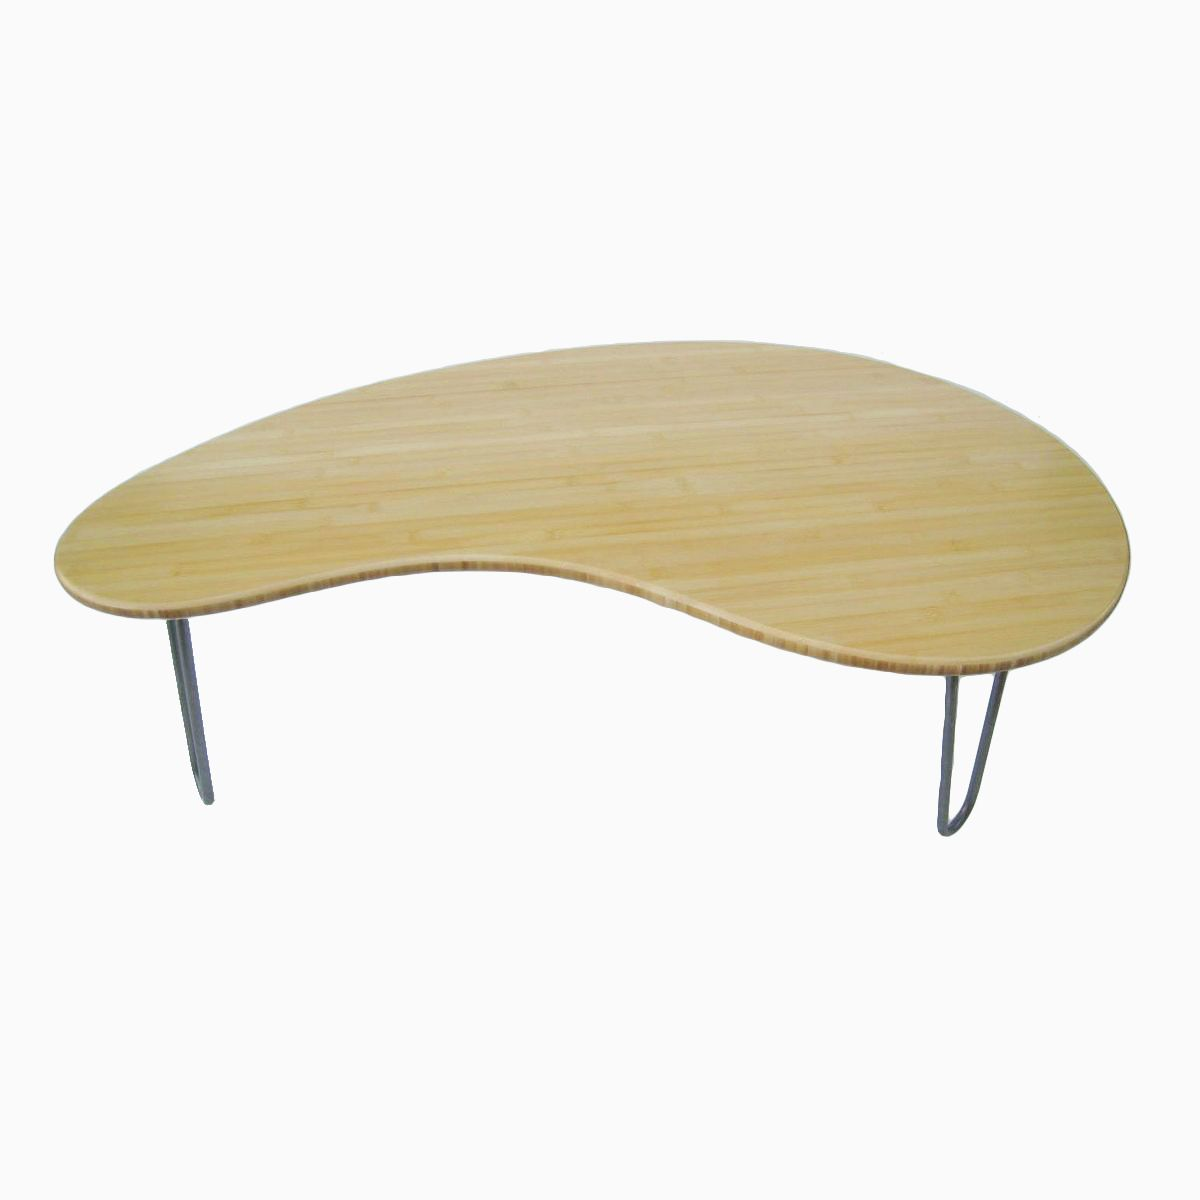 Buy A Hand Made Bamboo Kidney Bean Coffee Table Eames Era Made To Order From Studio1212